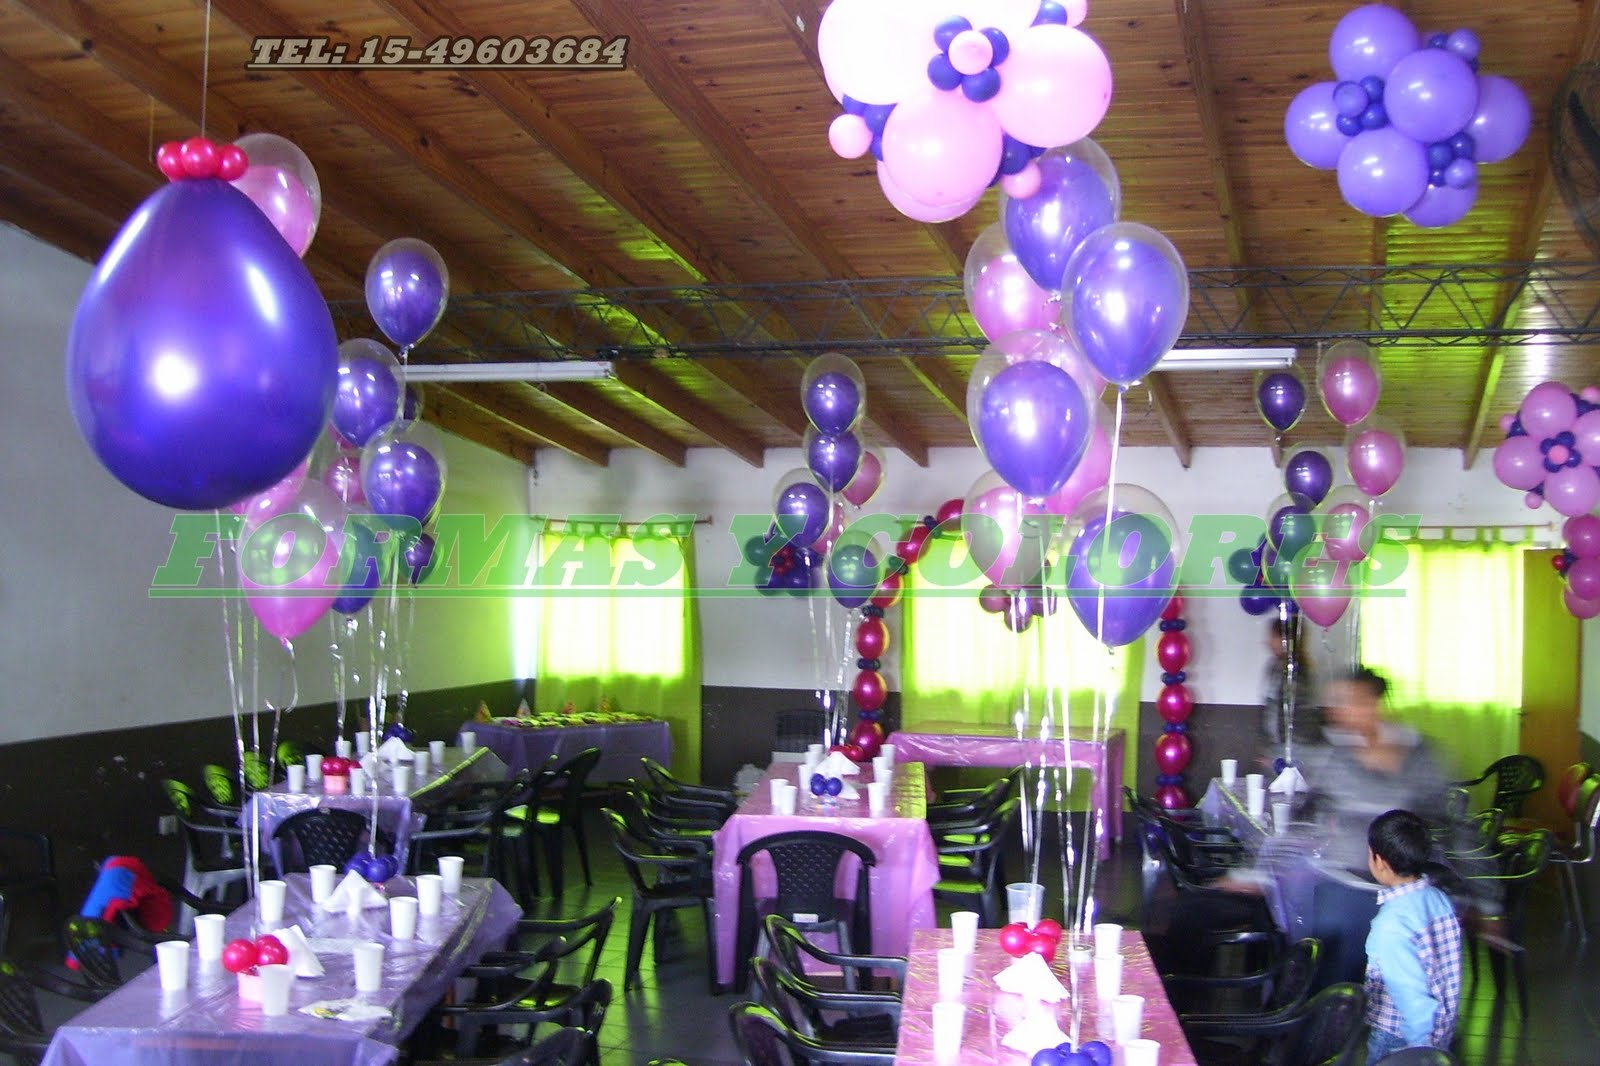 Decoracion con globos - Decoraciones con fotos ...